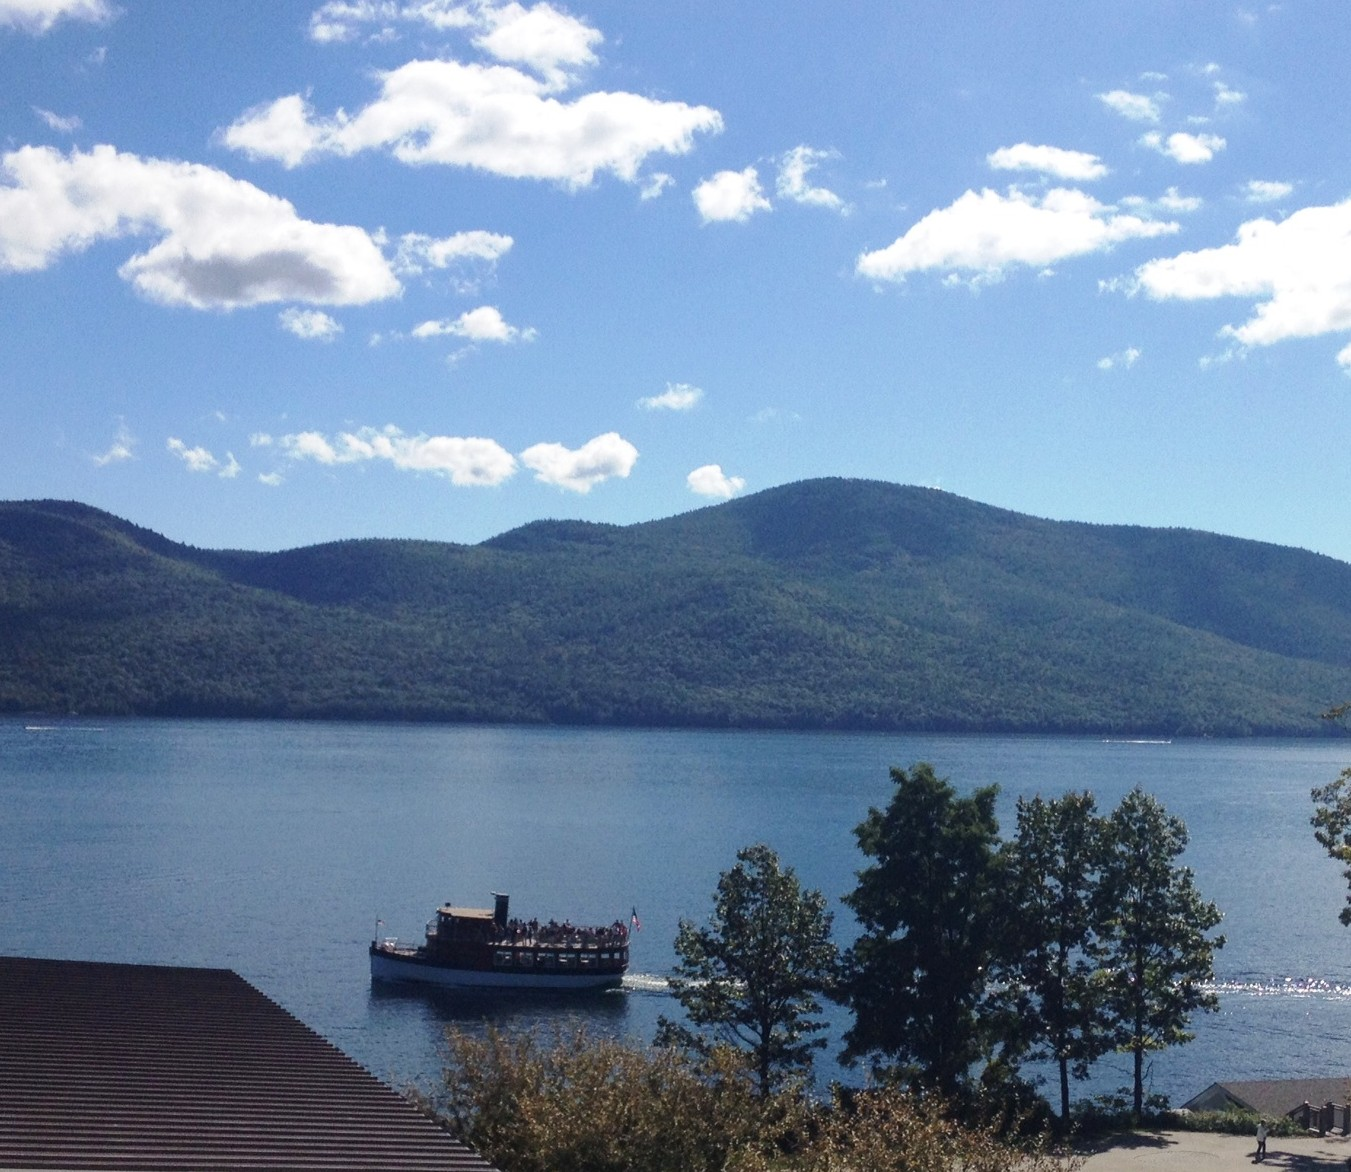 speaking of cruising on beautiful lake george